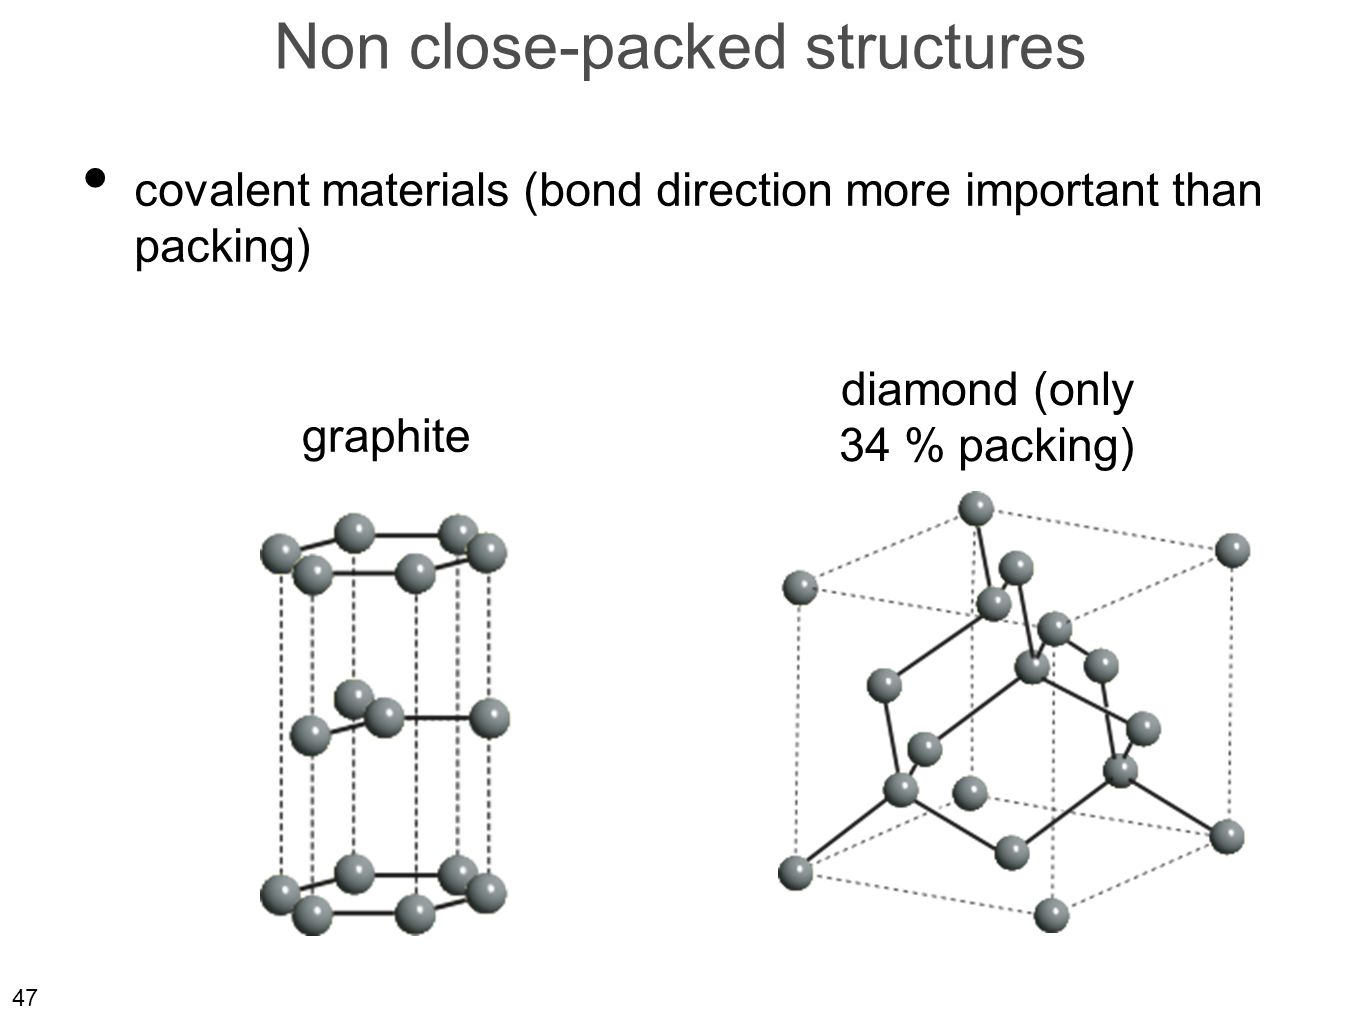 47 Non close-packed structures covalent materials (bond direction more important than packing) diamond (only 34 % packing) graphite